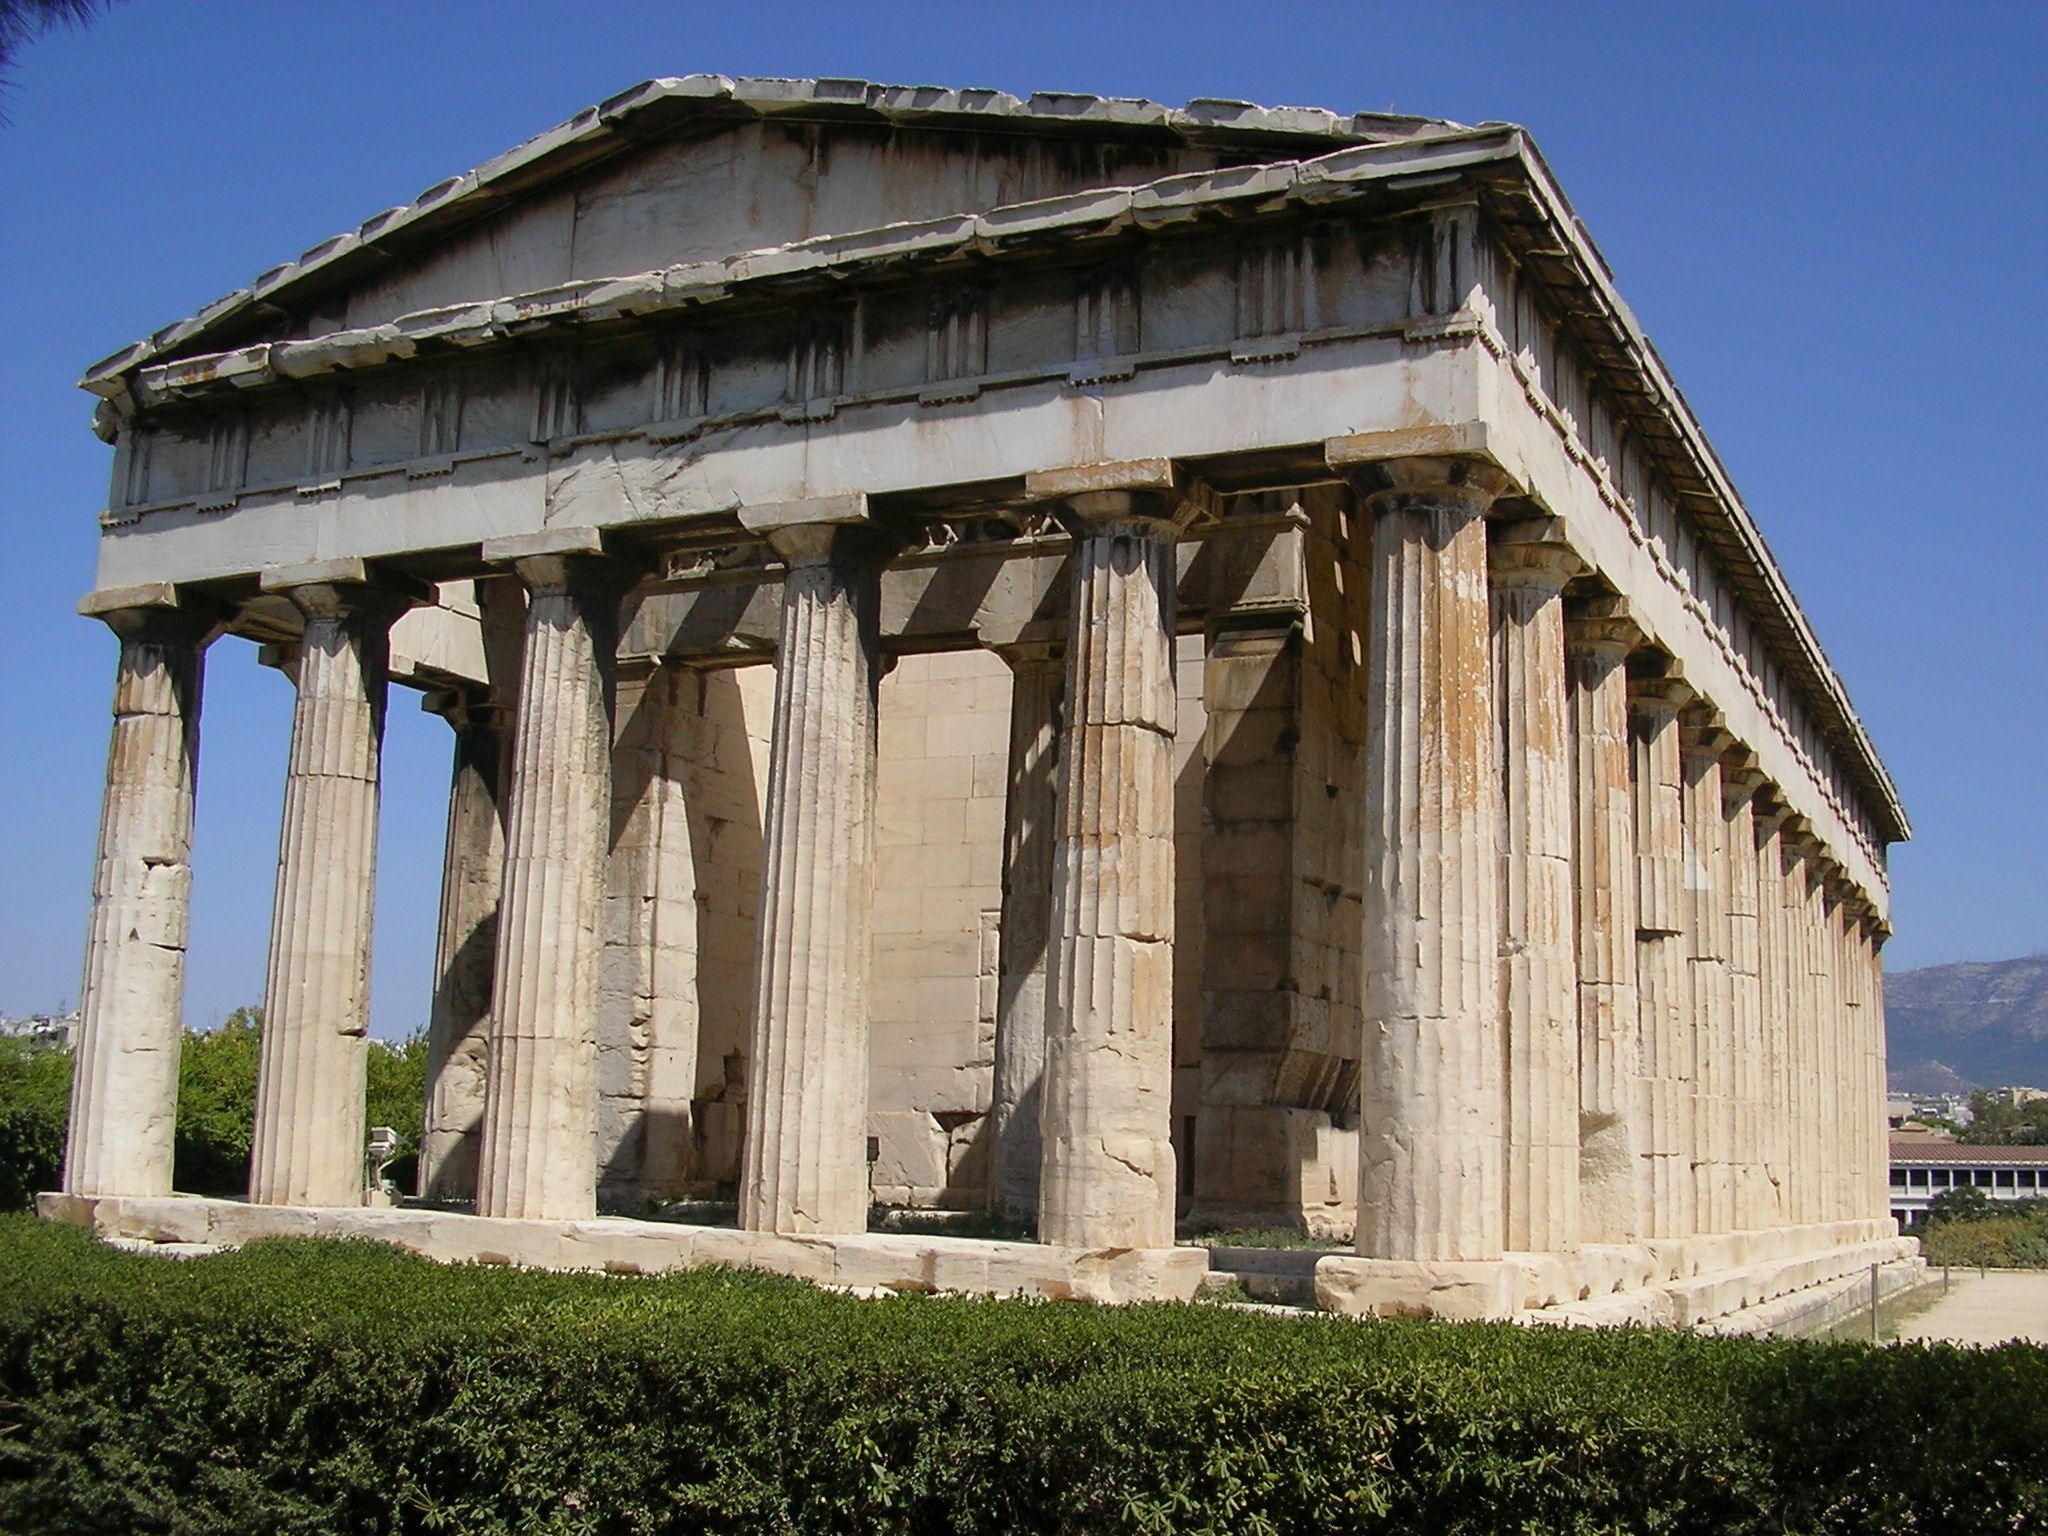 Some Greek Architecture That May Be Influential For The Well Scene